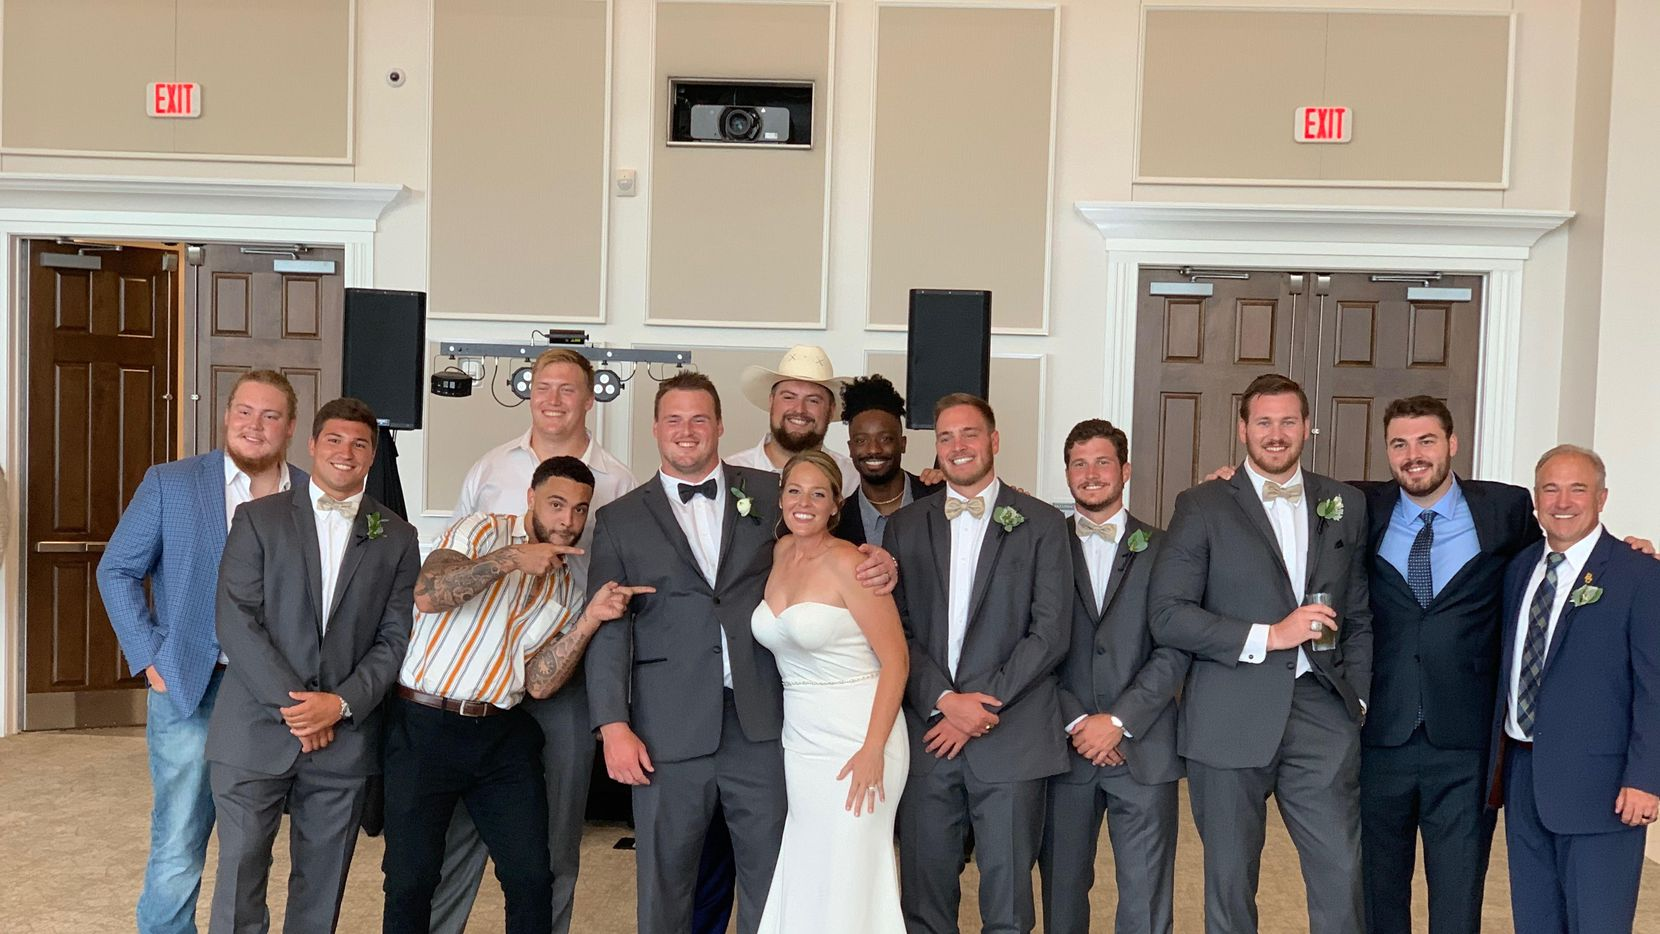 Baylor football player Sam Tecklenburg and wife Kelsey Stevens are surrounded by their wedding party at The Bowden in Keller on July 5, 2020. At far right is Baylor associate head coach/outside linebackers coach Joey McGuire, who officiated the wedding.